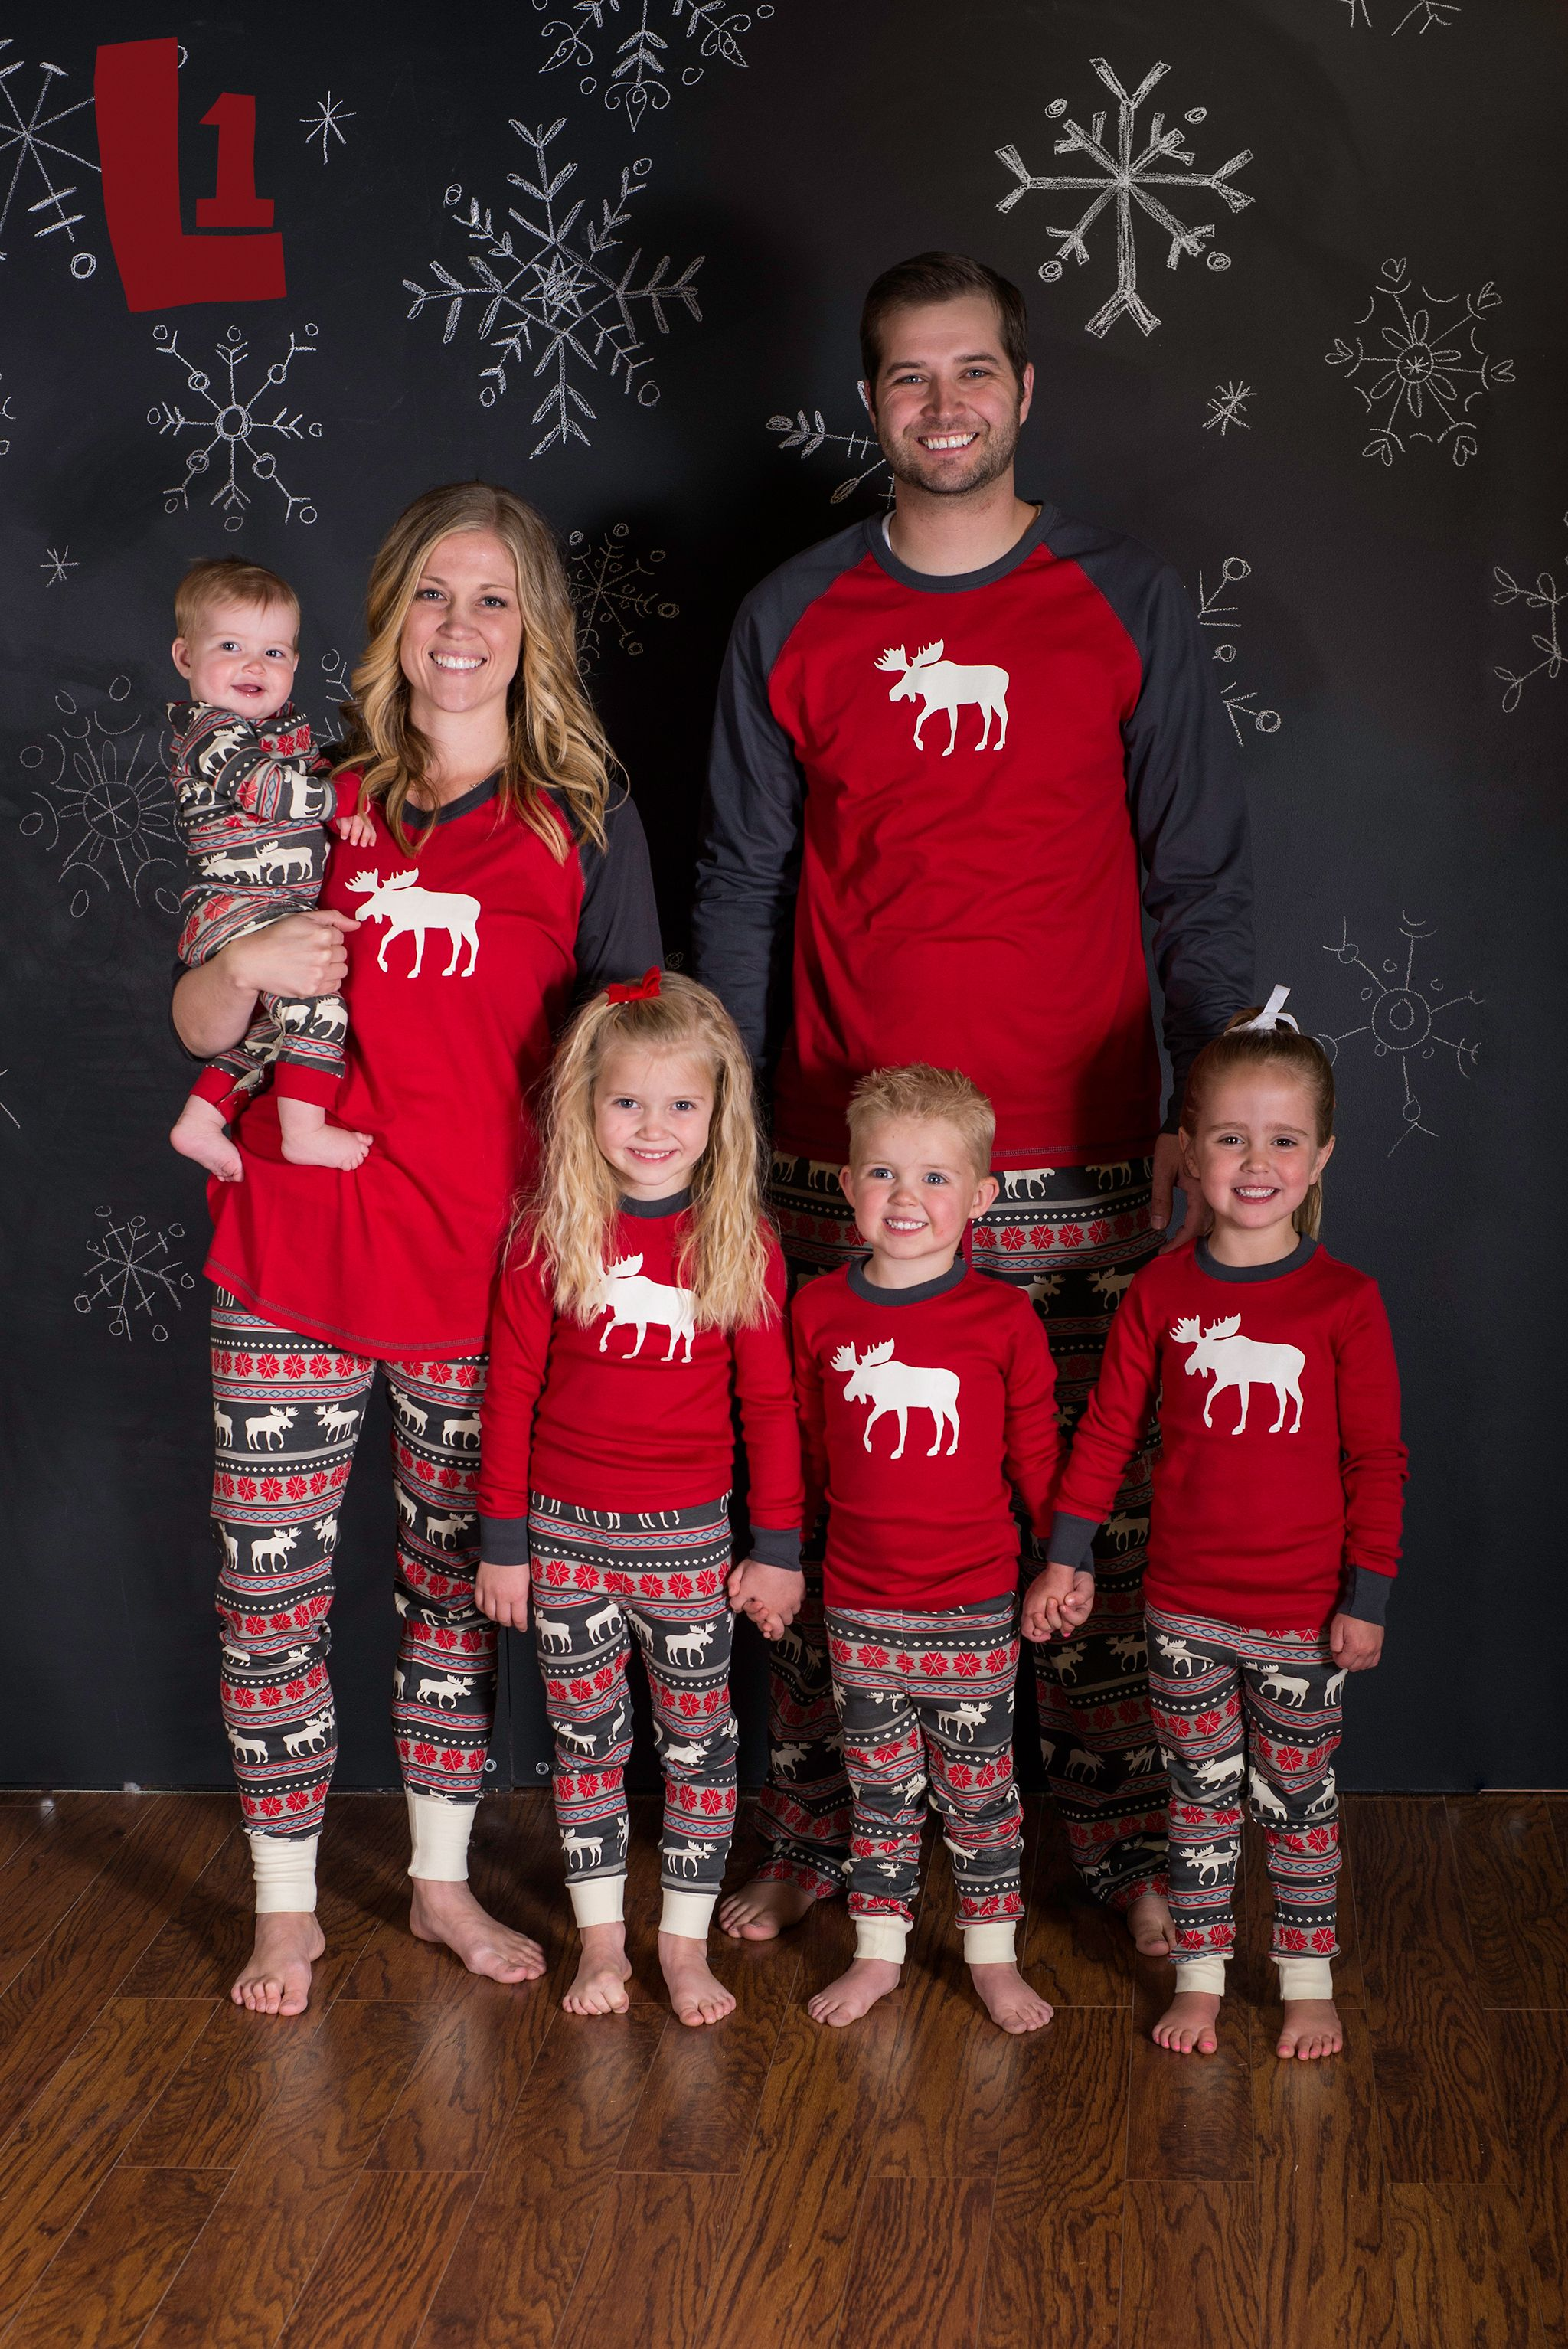 444f0404c2 15 Cute DIY Christmas Photo Ideas